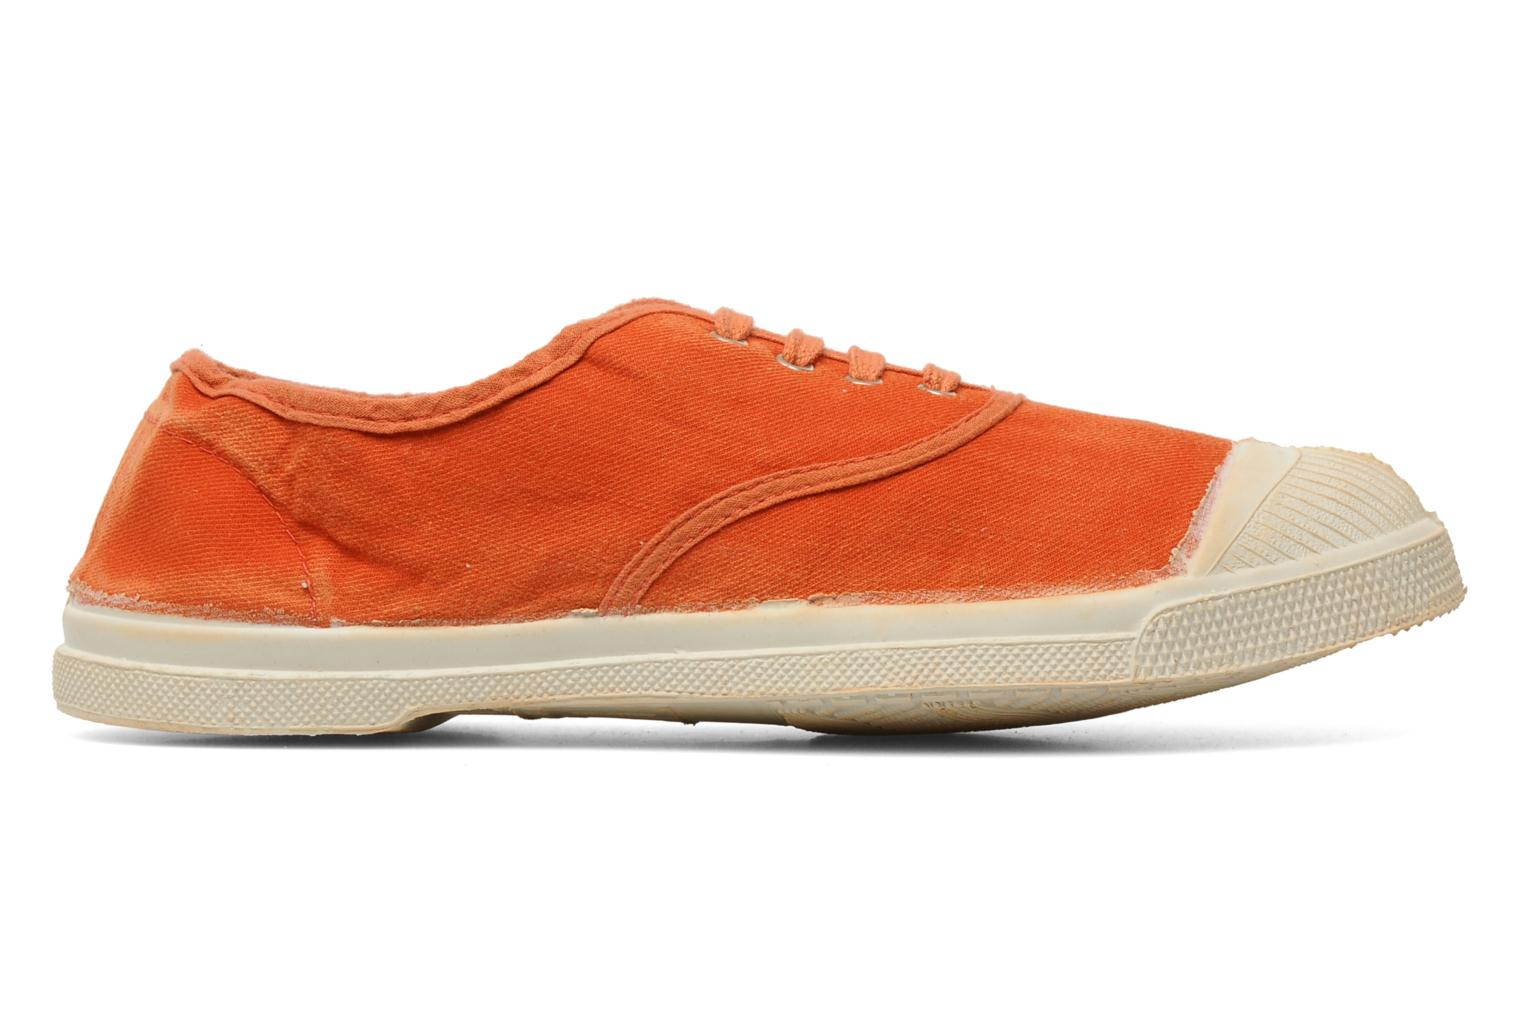 Baskets Bensimon Tennis Vintage F Orange vue derrière